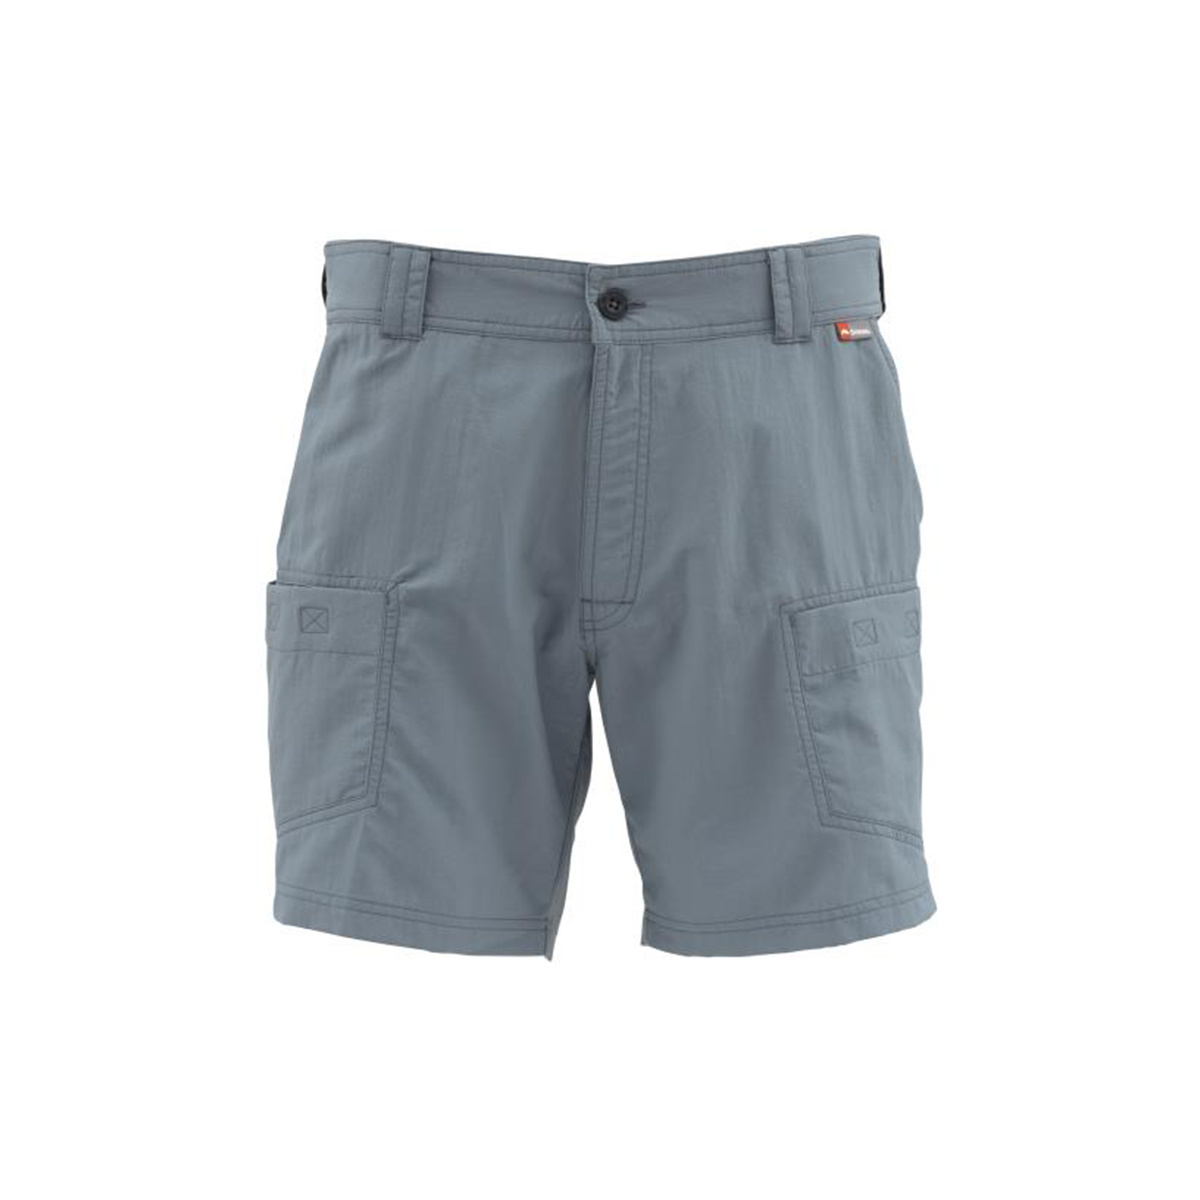 Simms Clothing M High Water Short